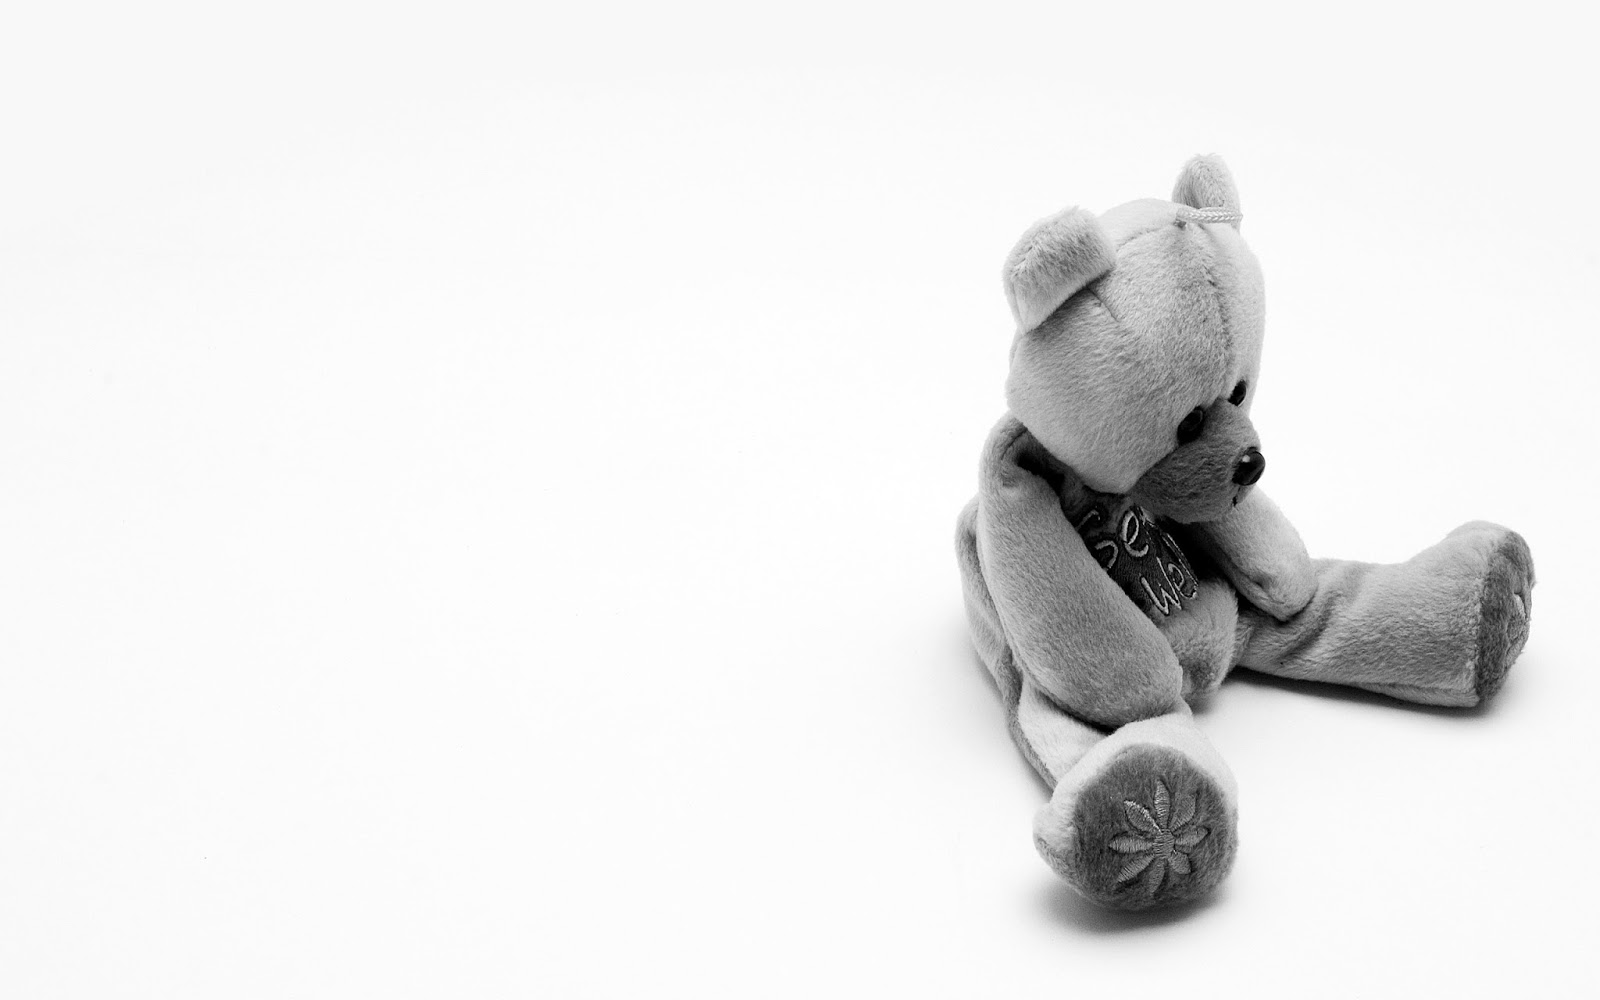 miss you face photos of sad teddy bear upset and sitting